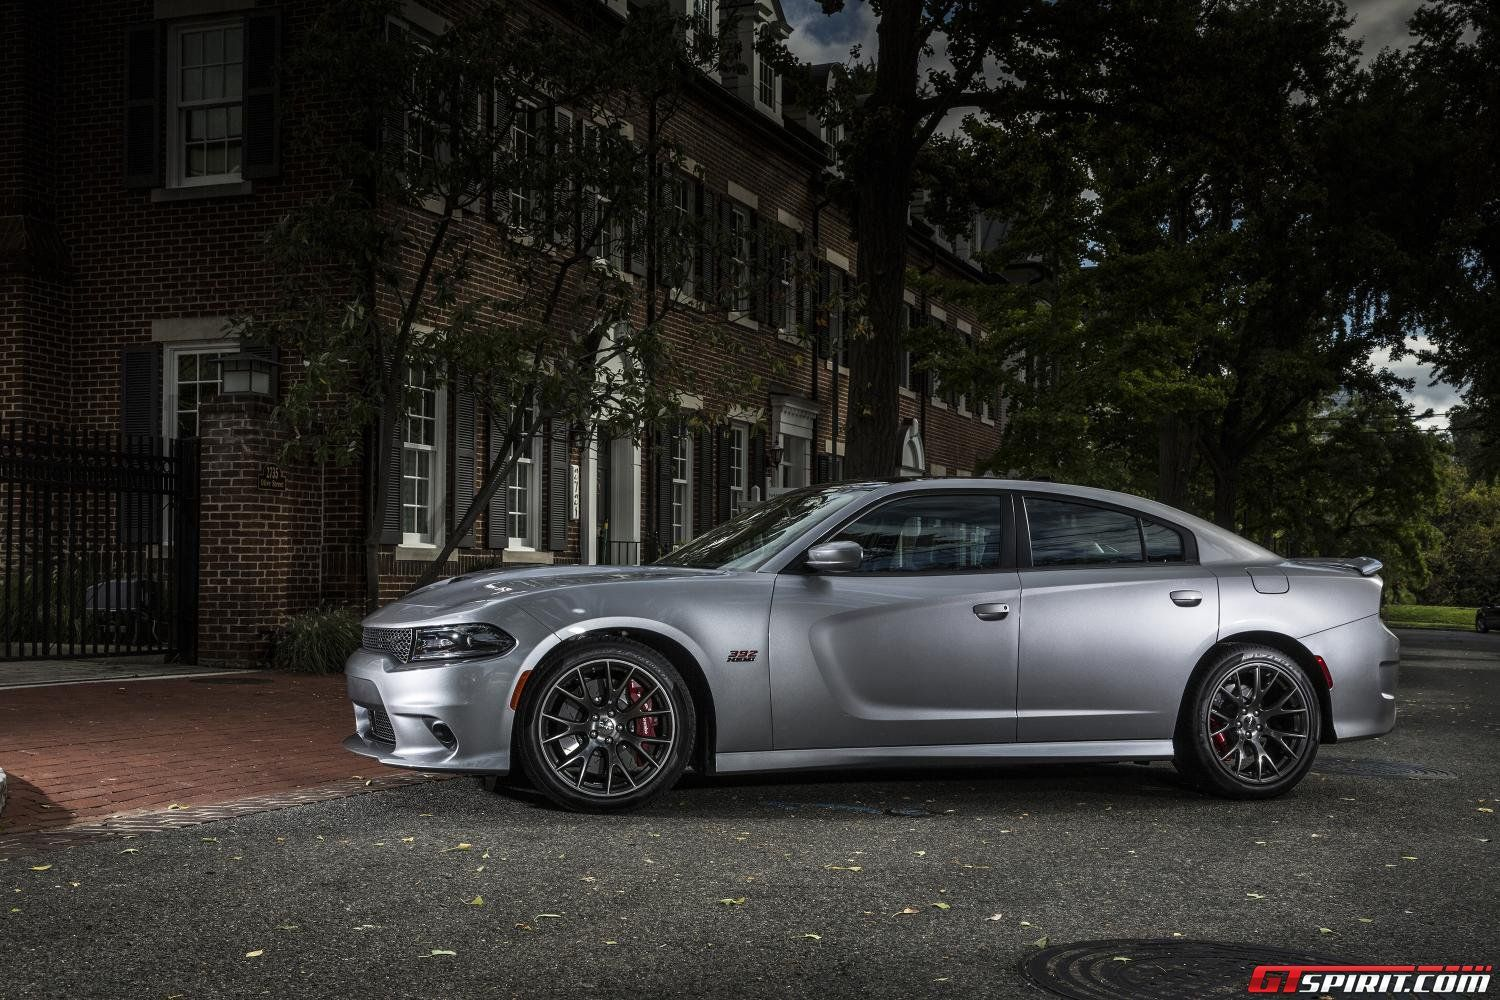 Functionality meets performance a look at the redesigned exterior of the 2015 dodge charger srt 392 drivesrt news